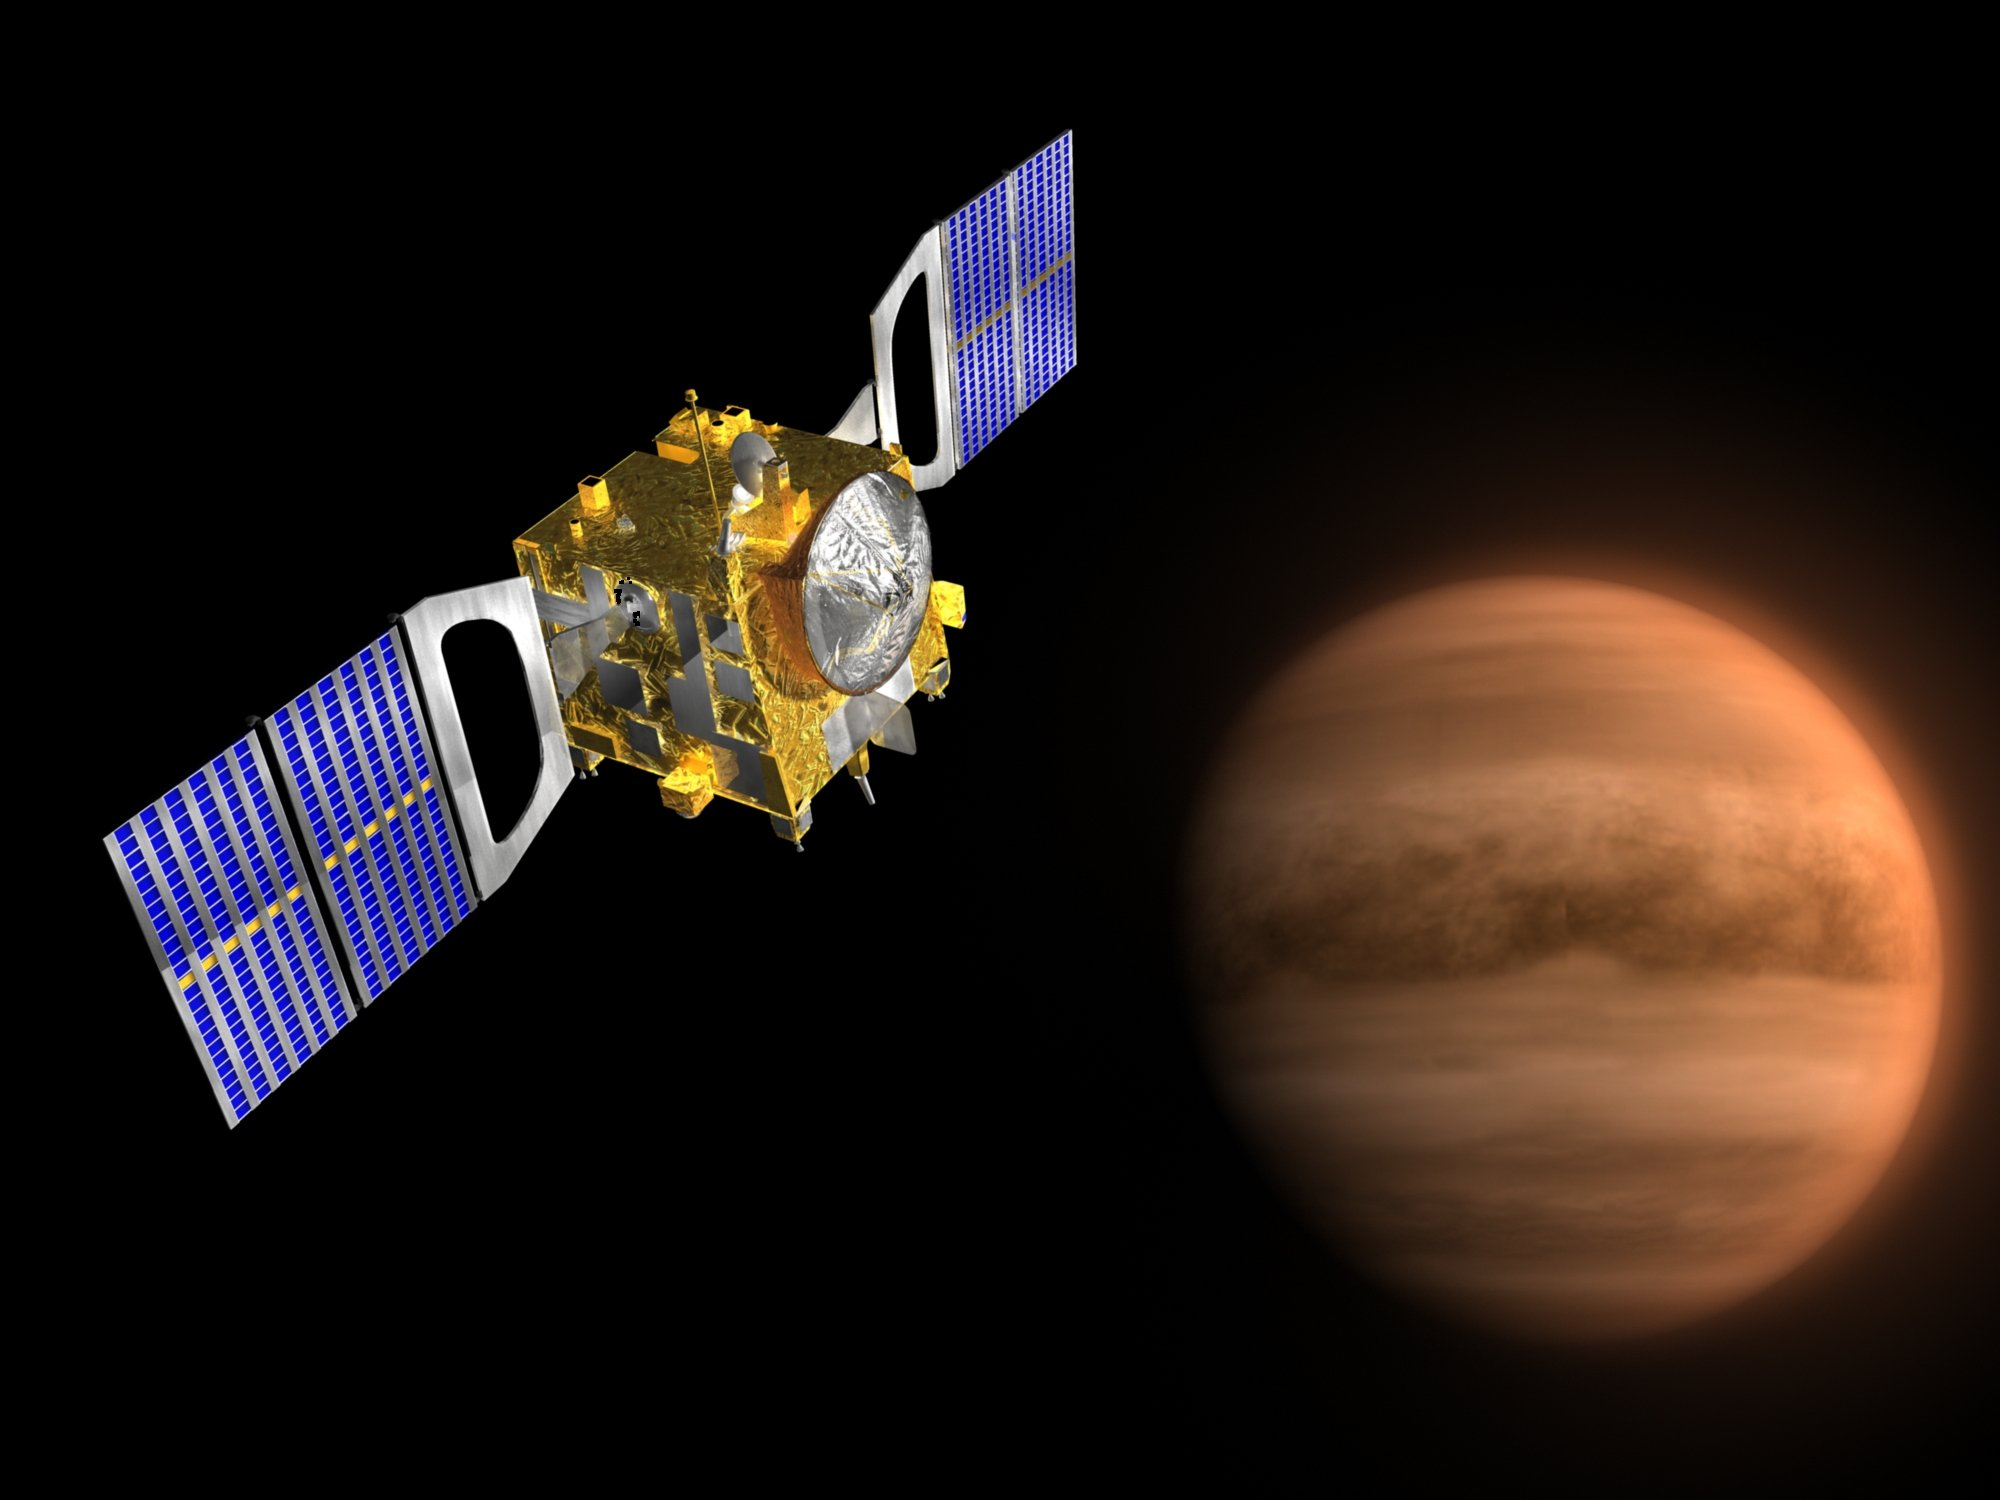 esa science amp technology mars express - HD 1920×1440